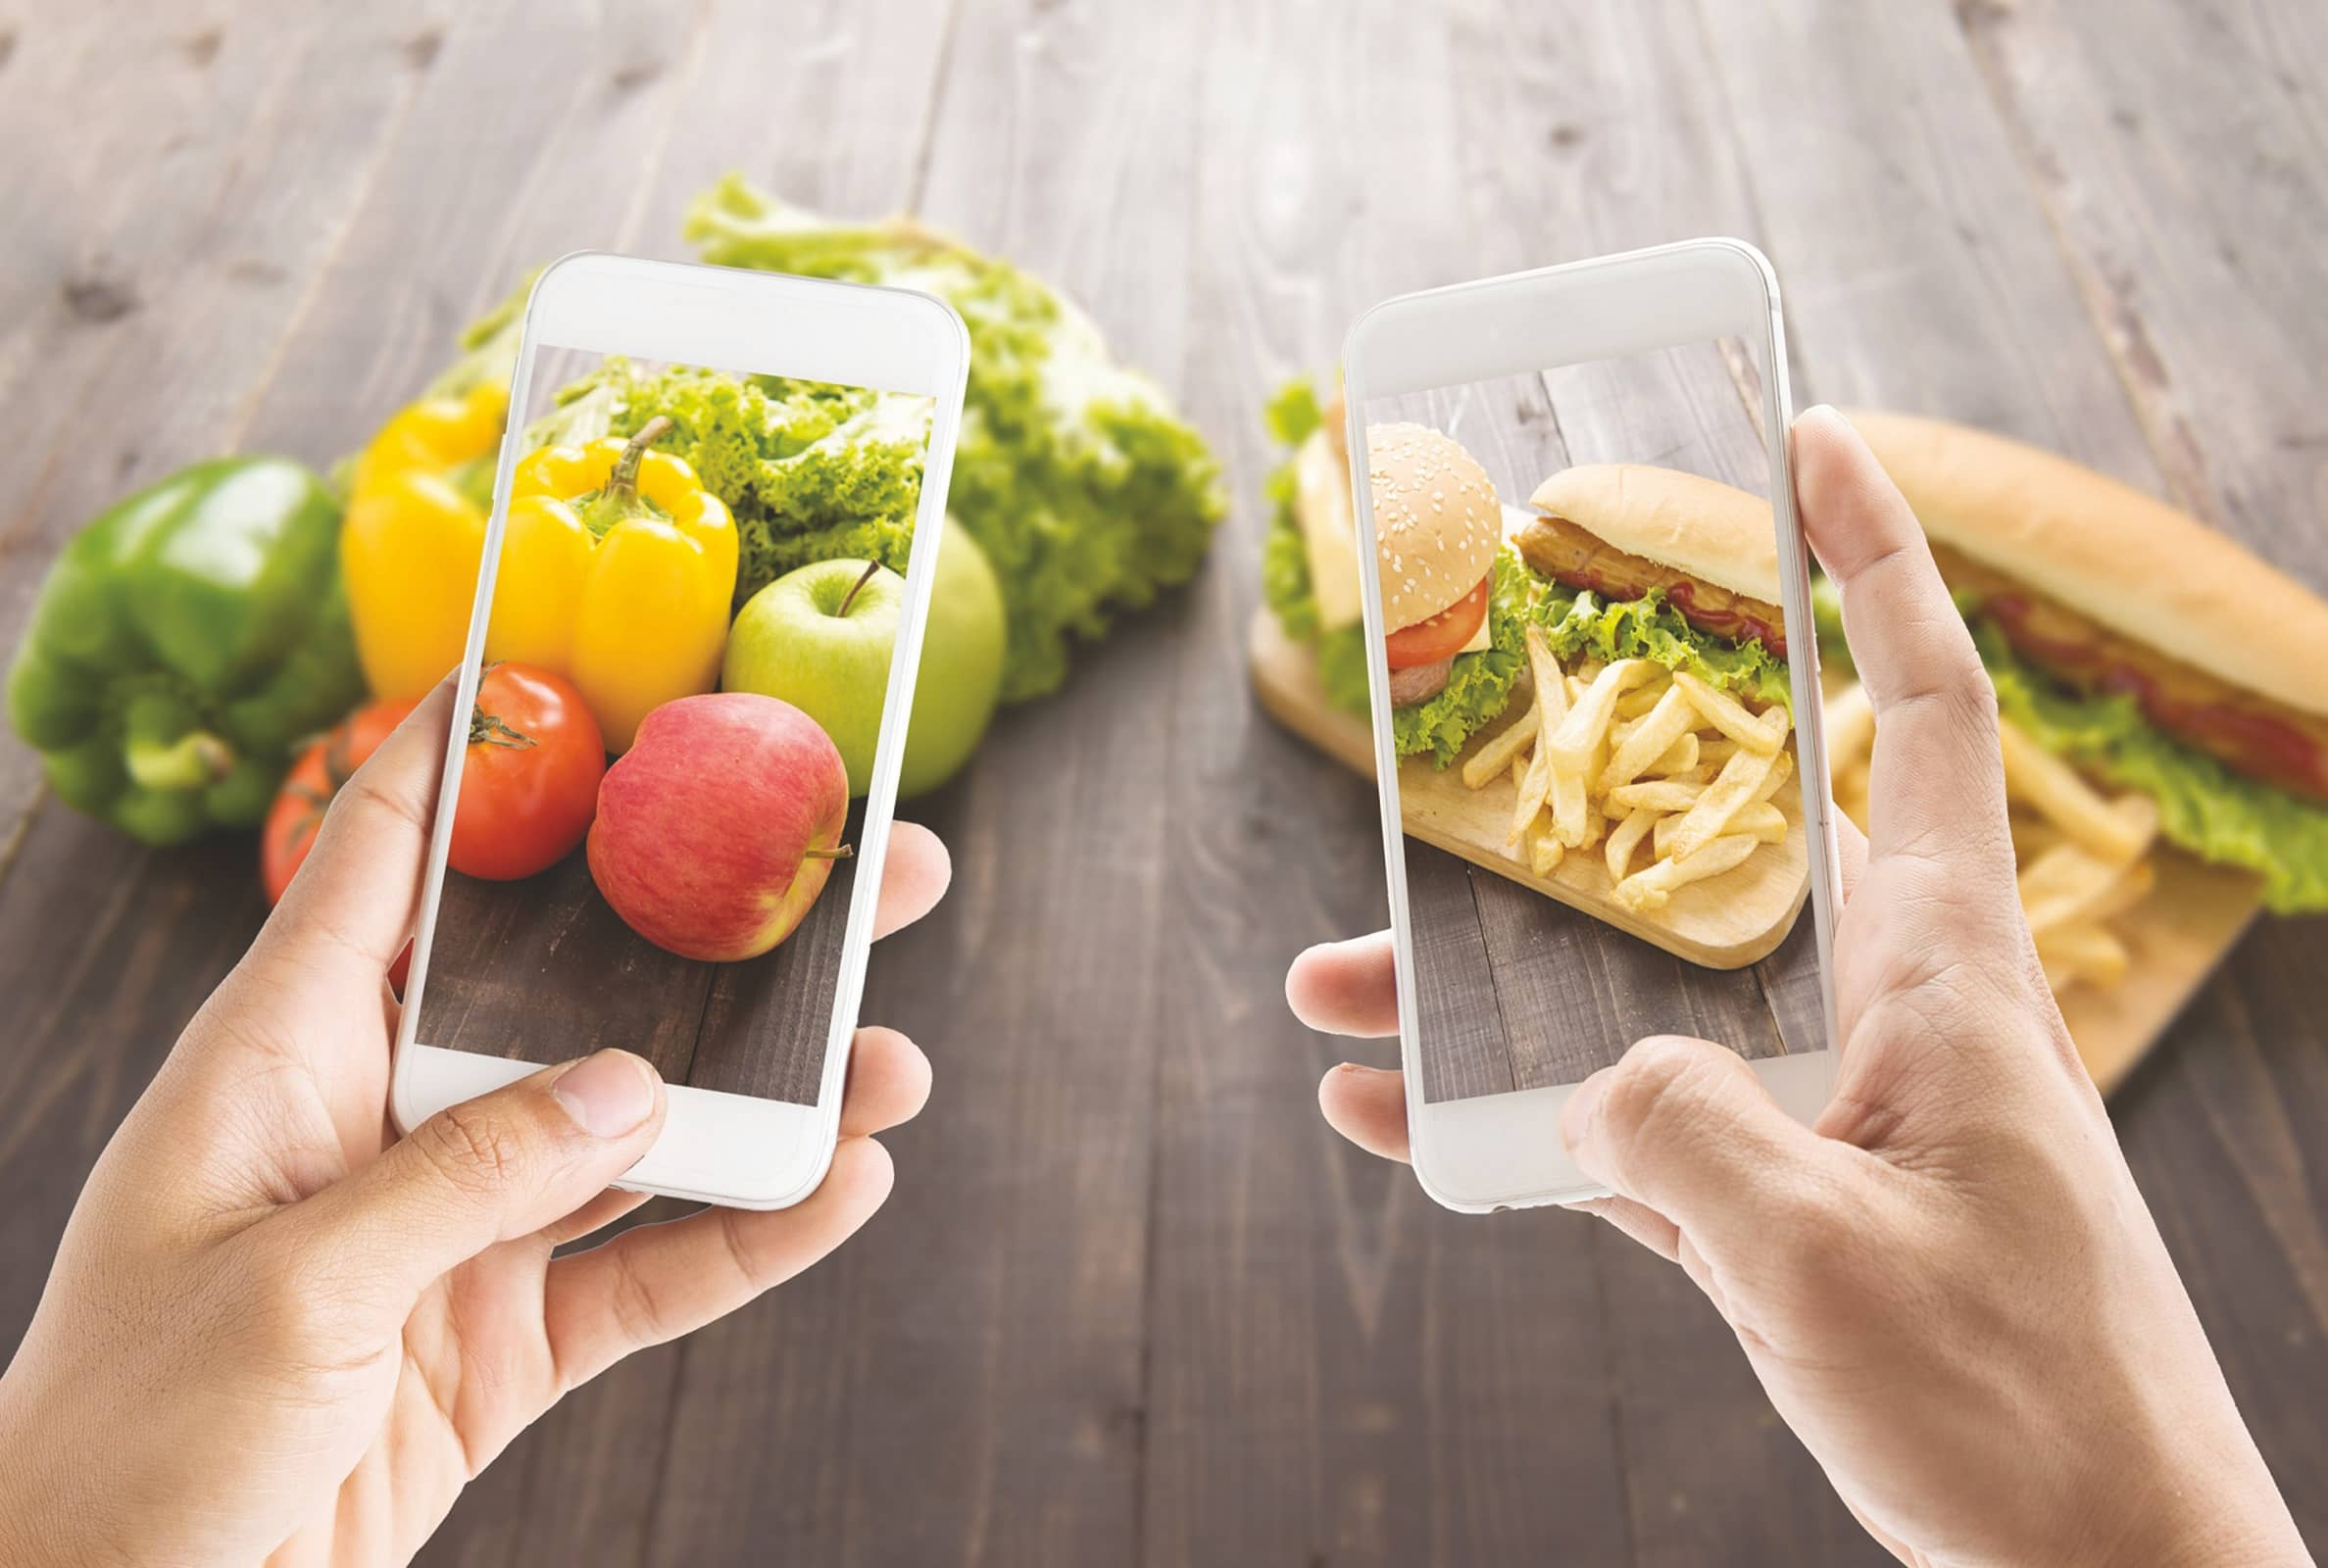 Authentication Solutions pertaining to the Food Industry